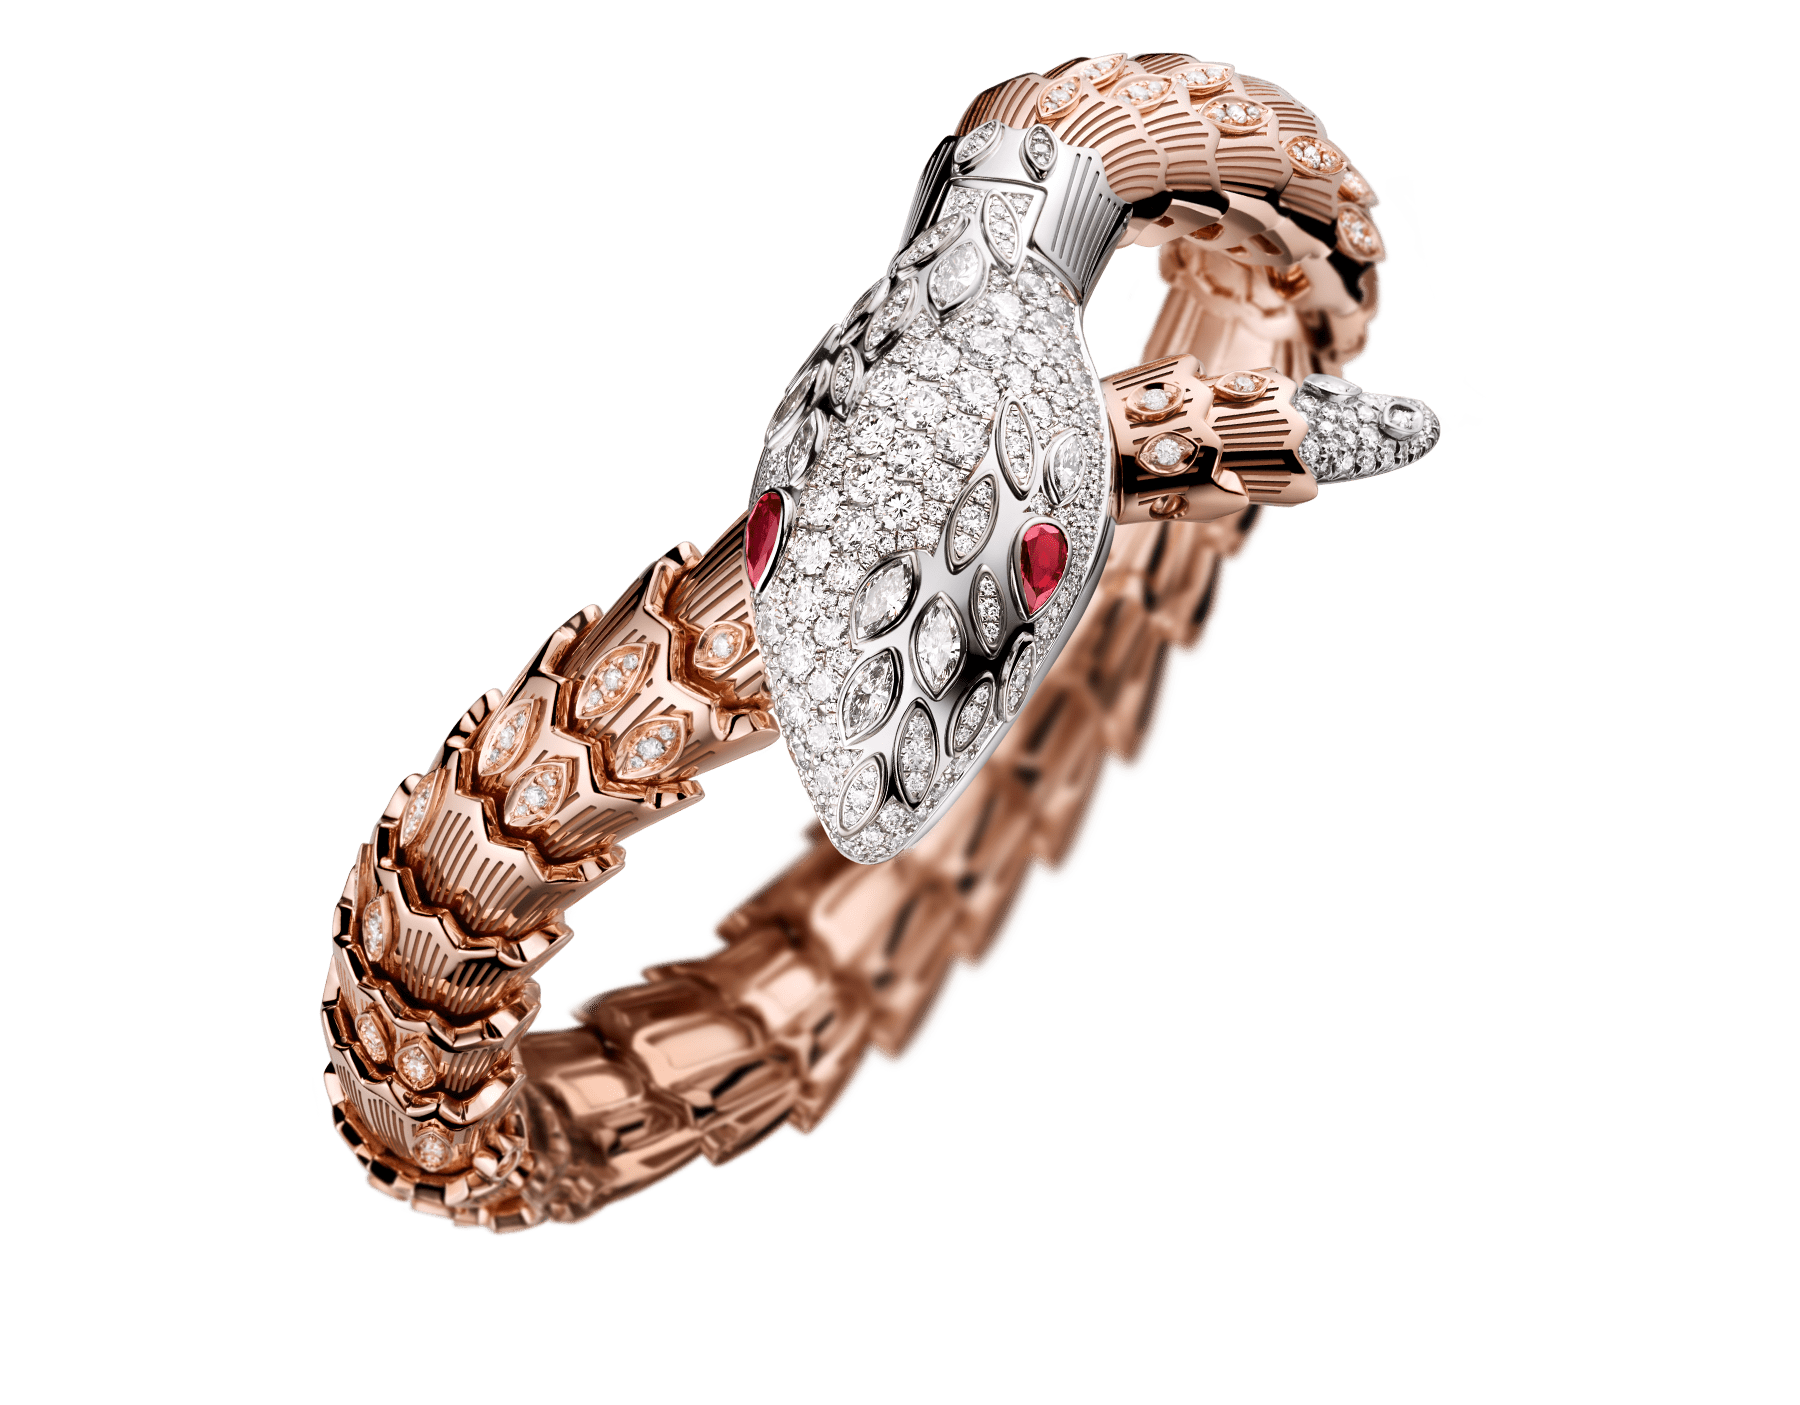 Serpenti Secret Watch with 18 kt white gold head set with brilliant cut and marquise cut diamonds and ruby eyes, 18 kt white gold case, 18 kt white gold dial set with brilliant cut diamonds, single spiral bracelet in 18 kt rose and white gold, set with brilliant cut diamonds. 102239 image 2